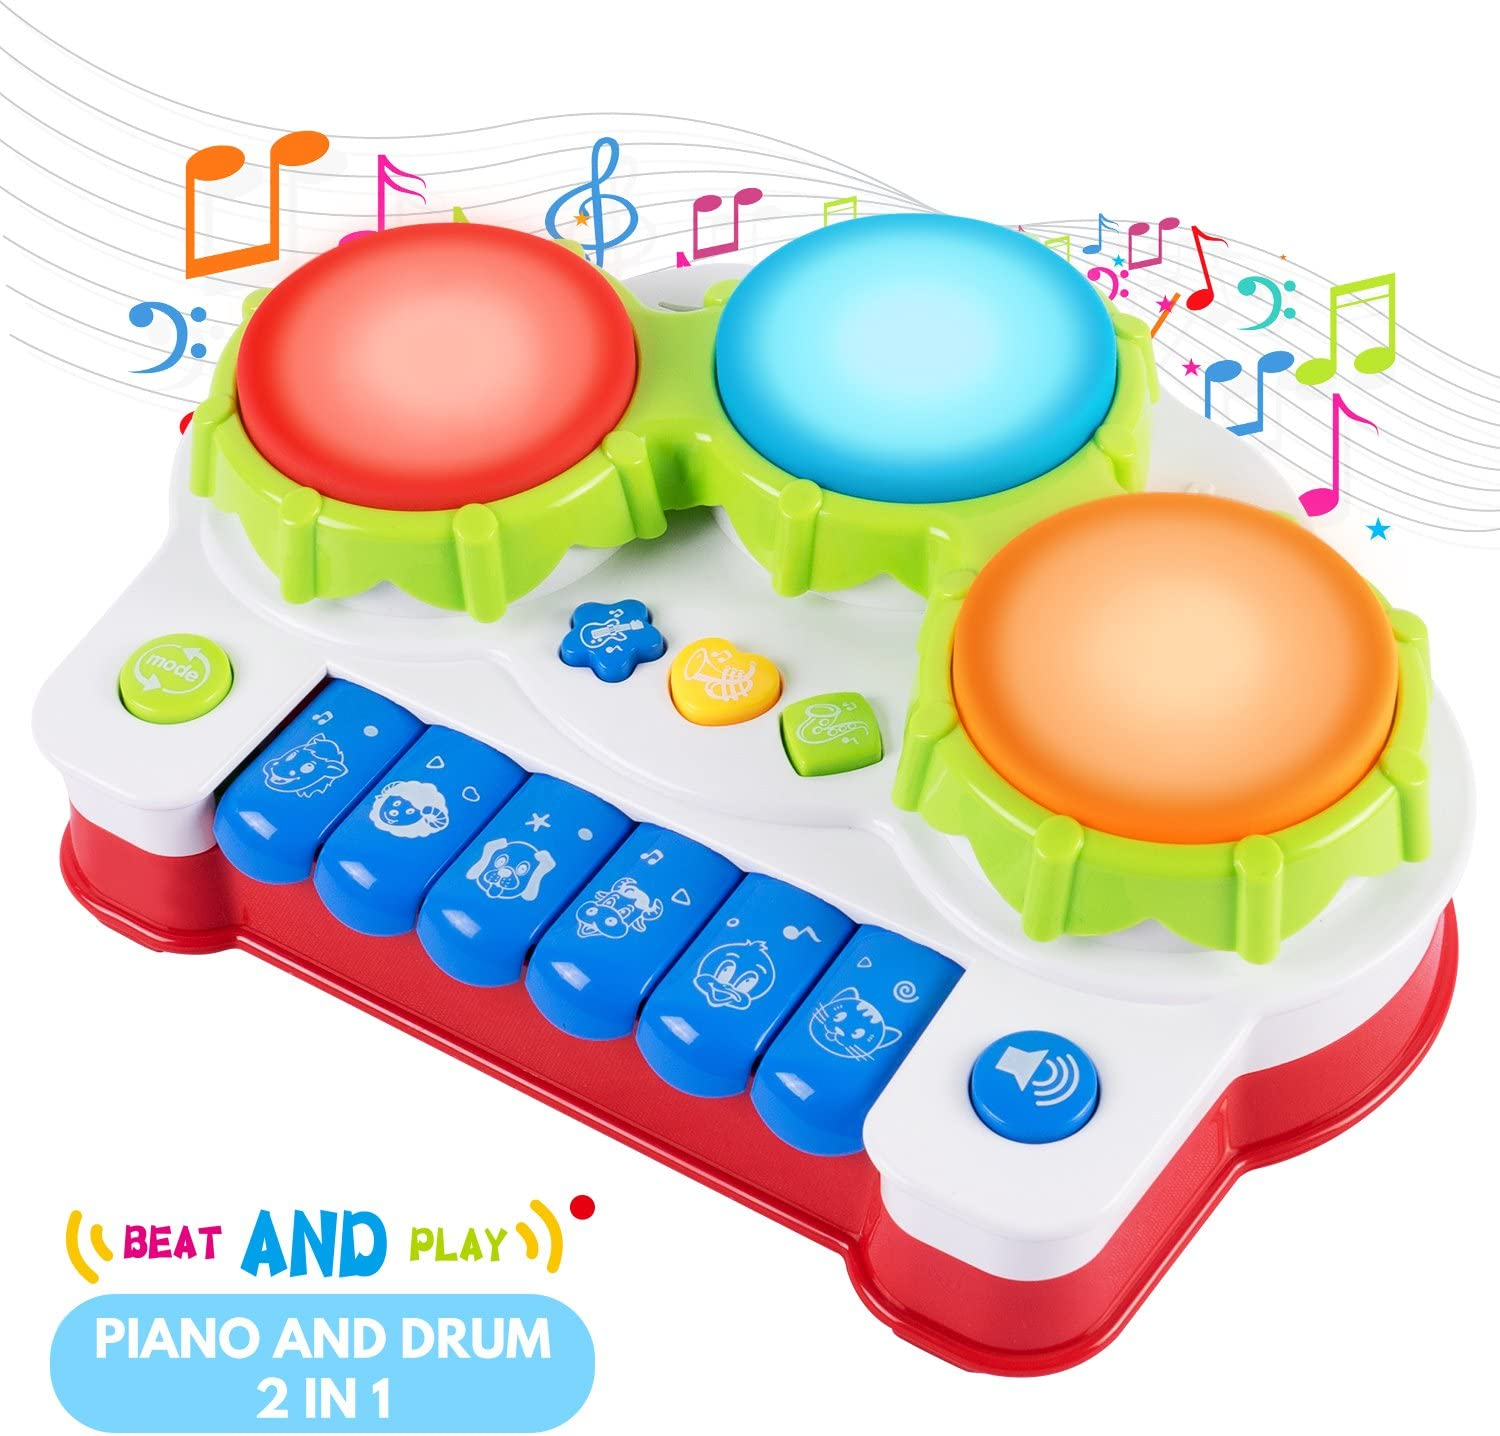 LIGHTENING DEAL BE QUICK – SGILE Early Education Piano & Drum Instrument with 4 Musical Modes and Light WAS £14.99 NOW £11.09 @ Amazon